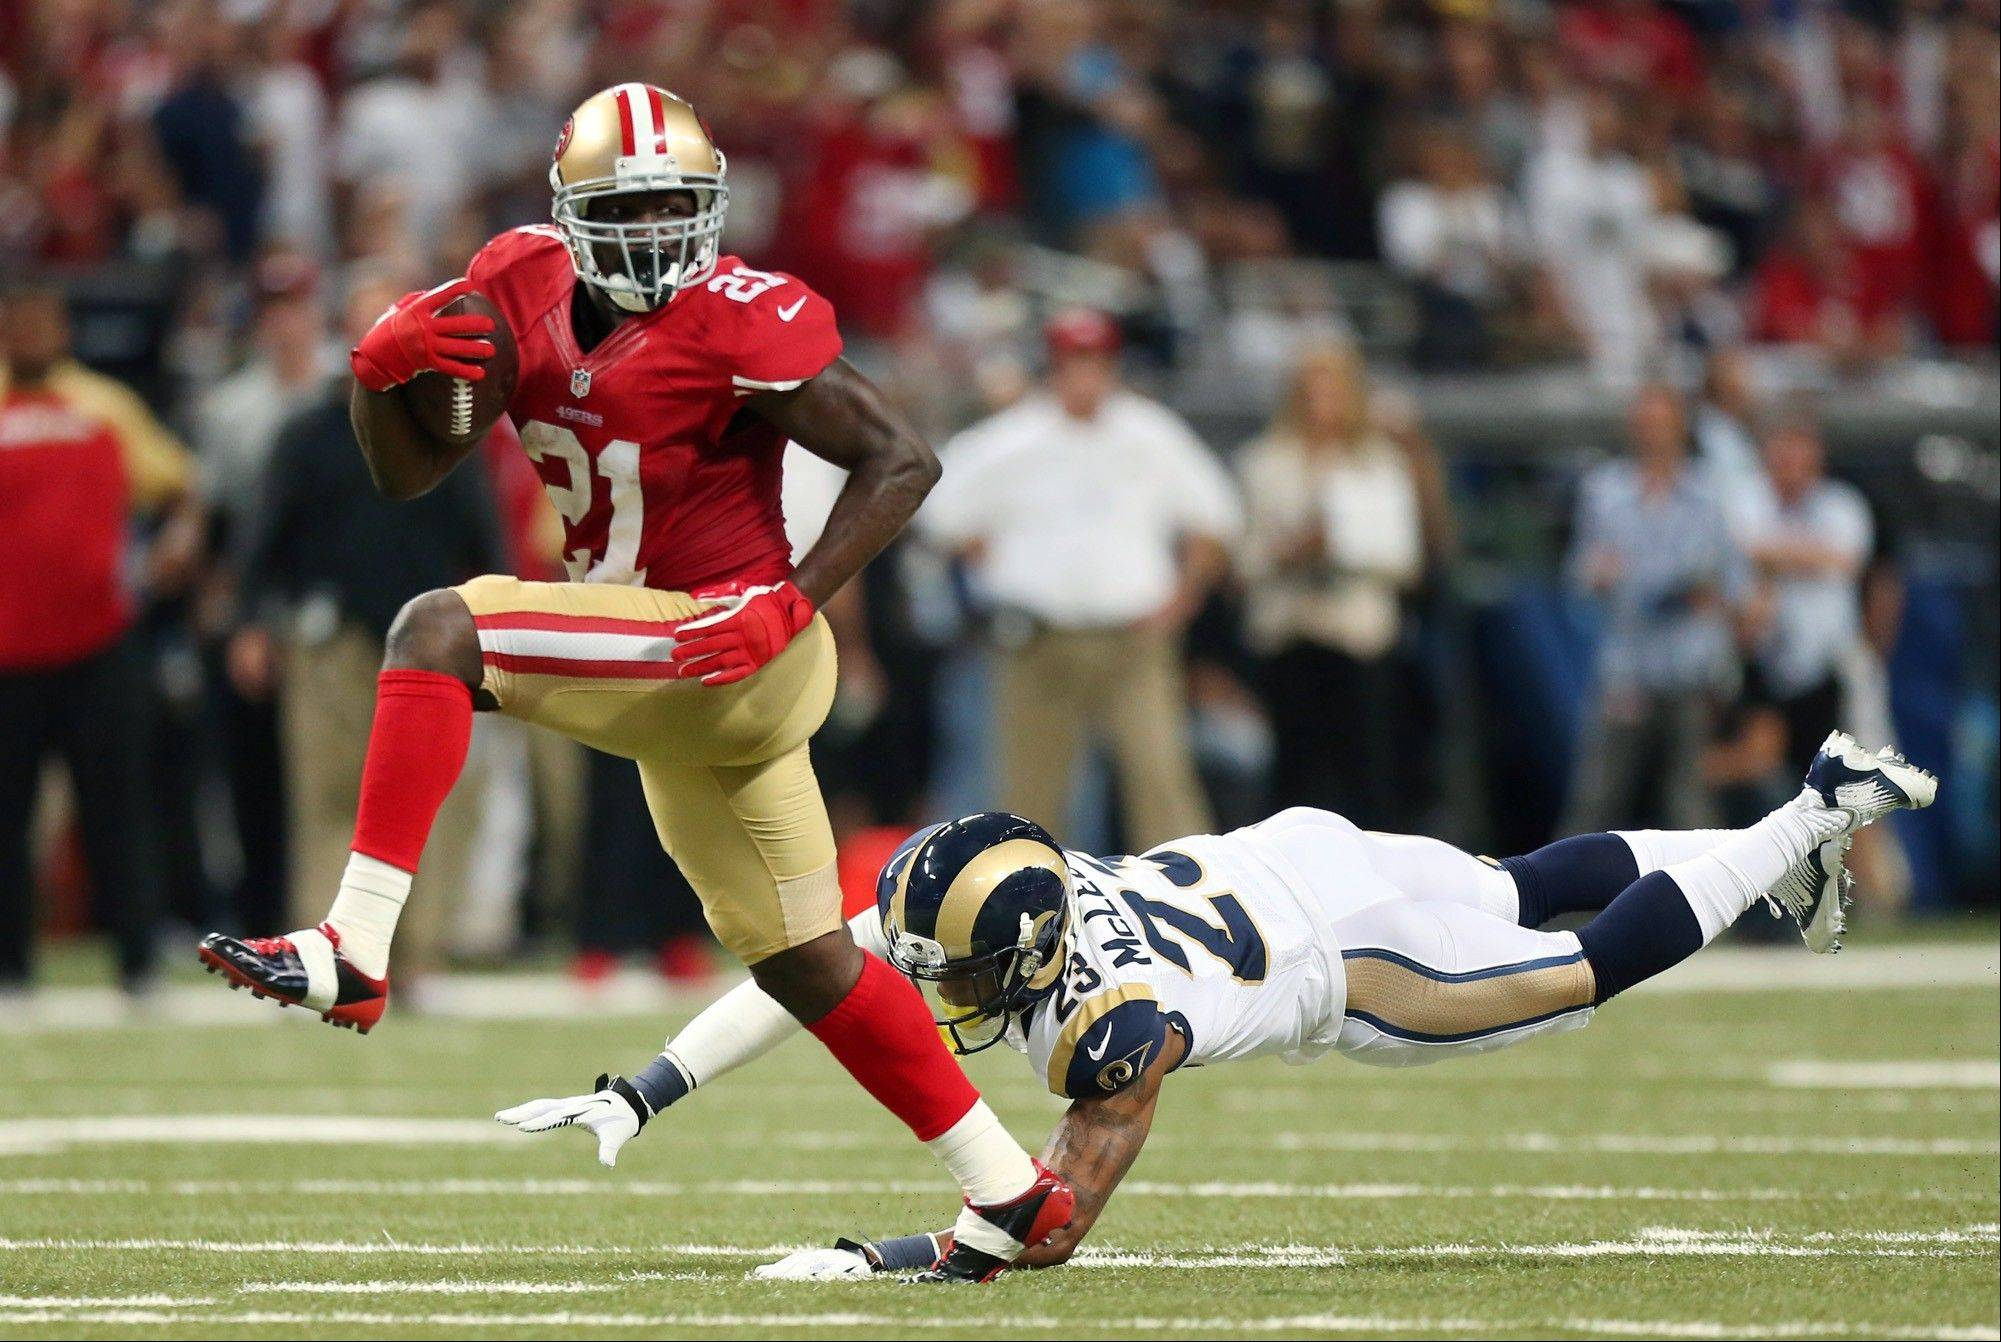 San Francisco 49ers running back Frank Gore eludes a tackle Rams safety Rodney McLeod en route to a 34-yard touchdown Thursday in St. Louis.